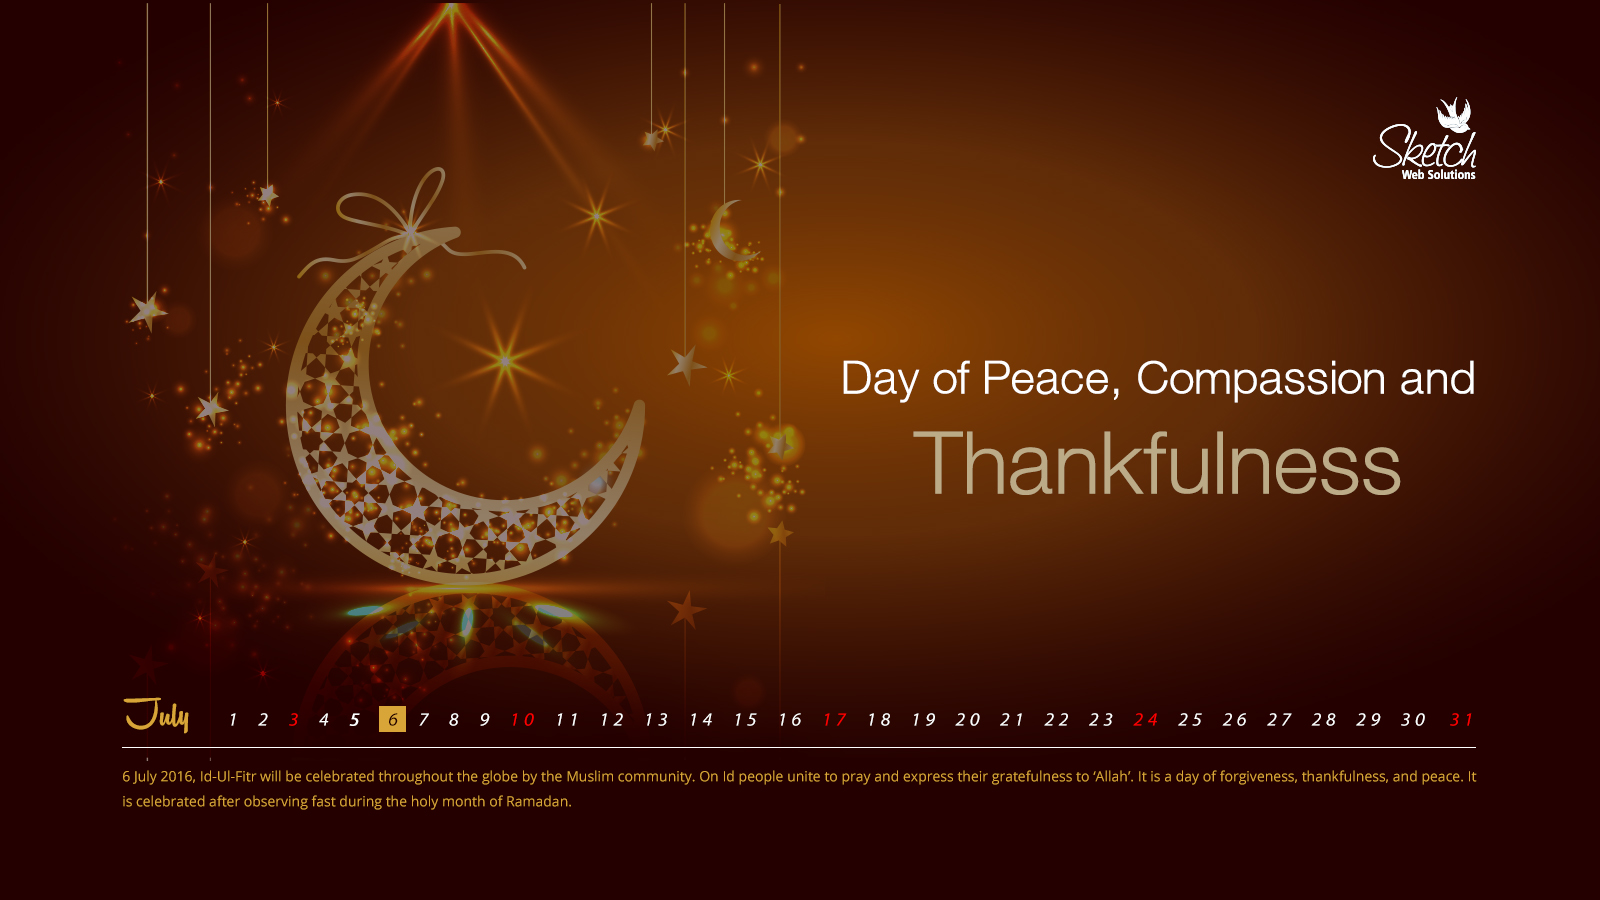 Day of Peace, Compassion and Thankfulness